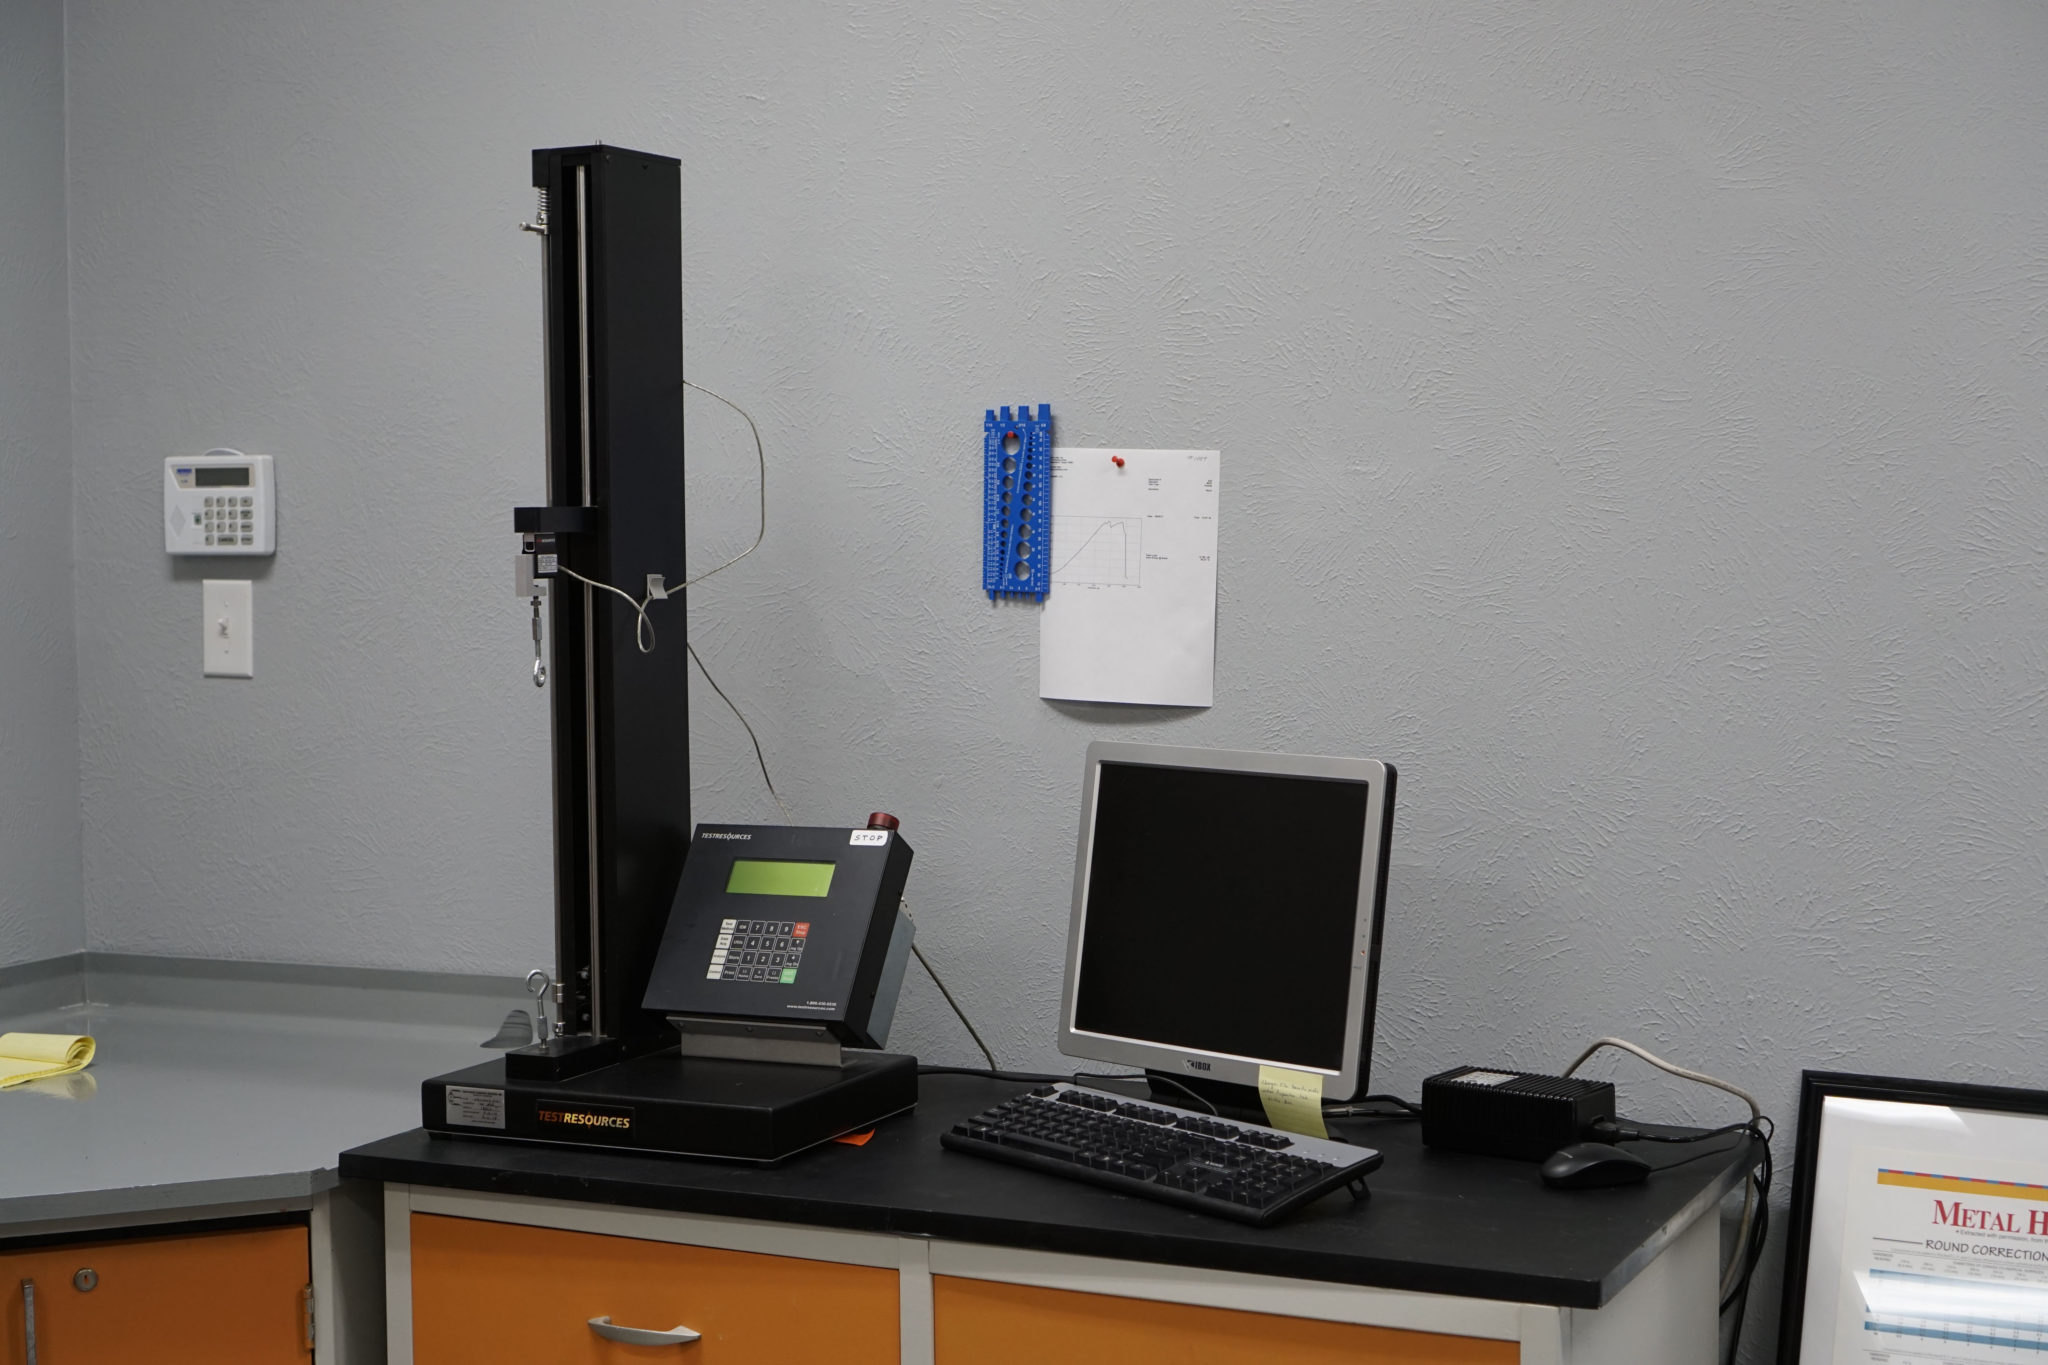 Testresources tensile machine capable of 250 pounds of force.